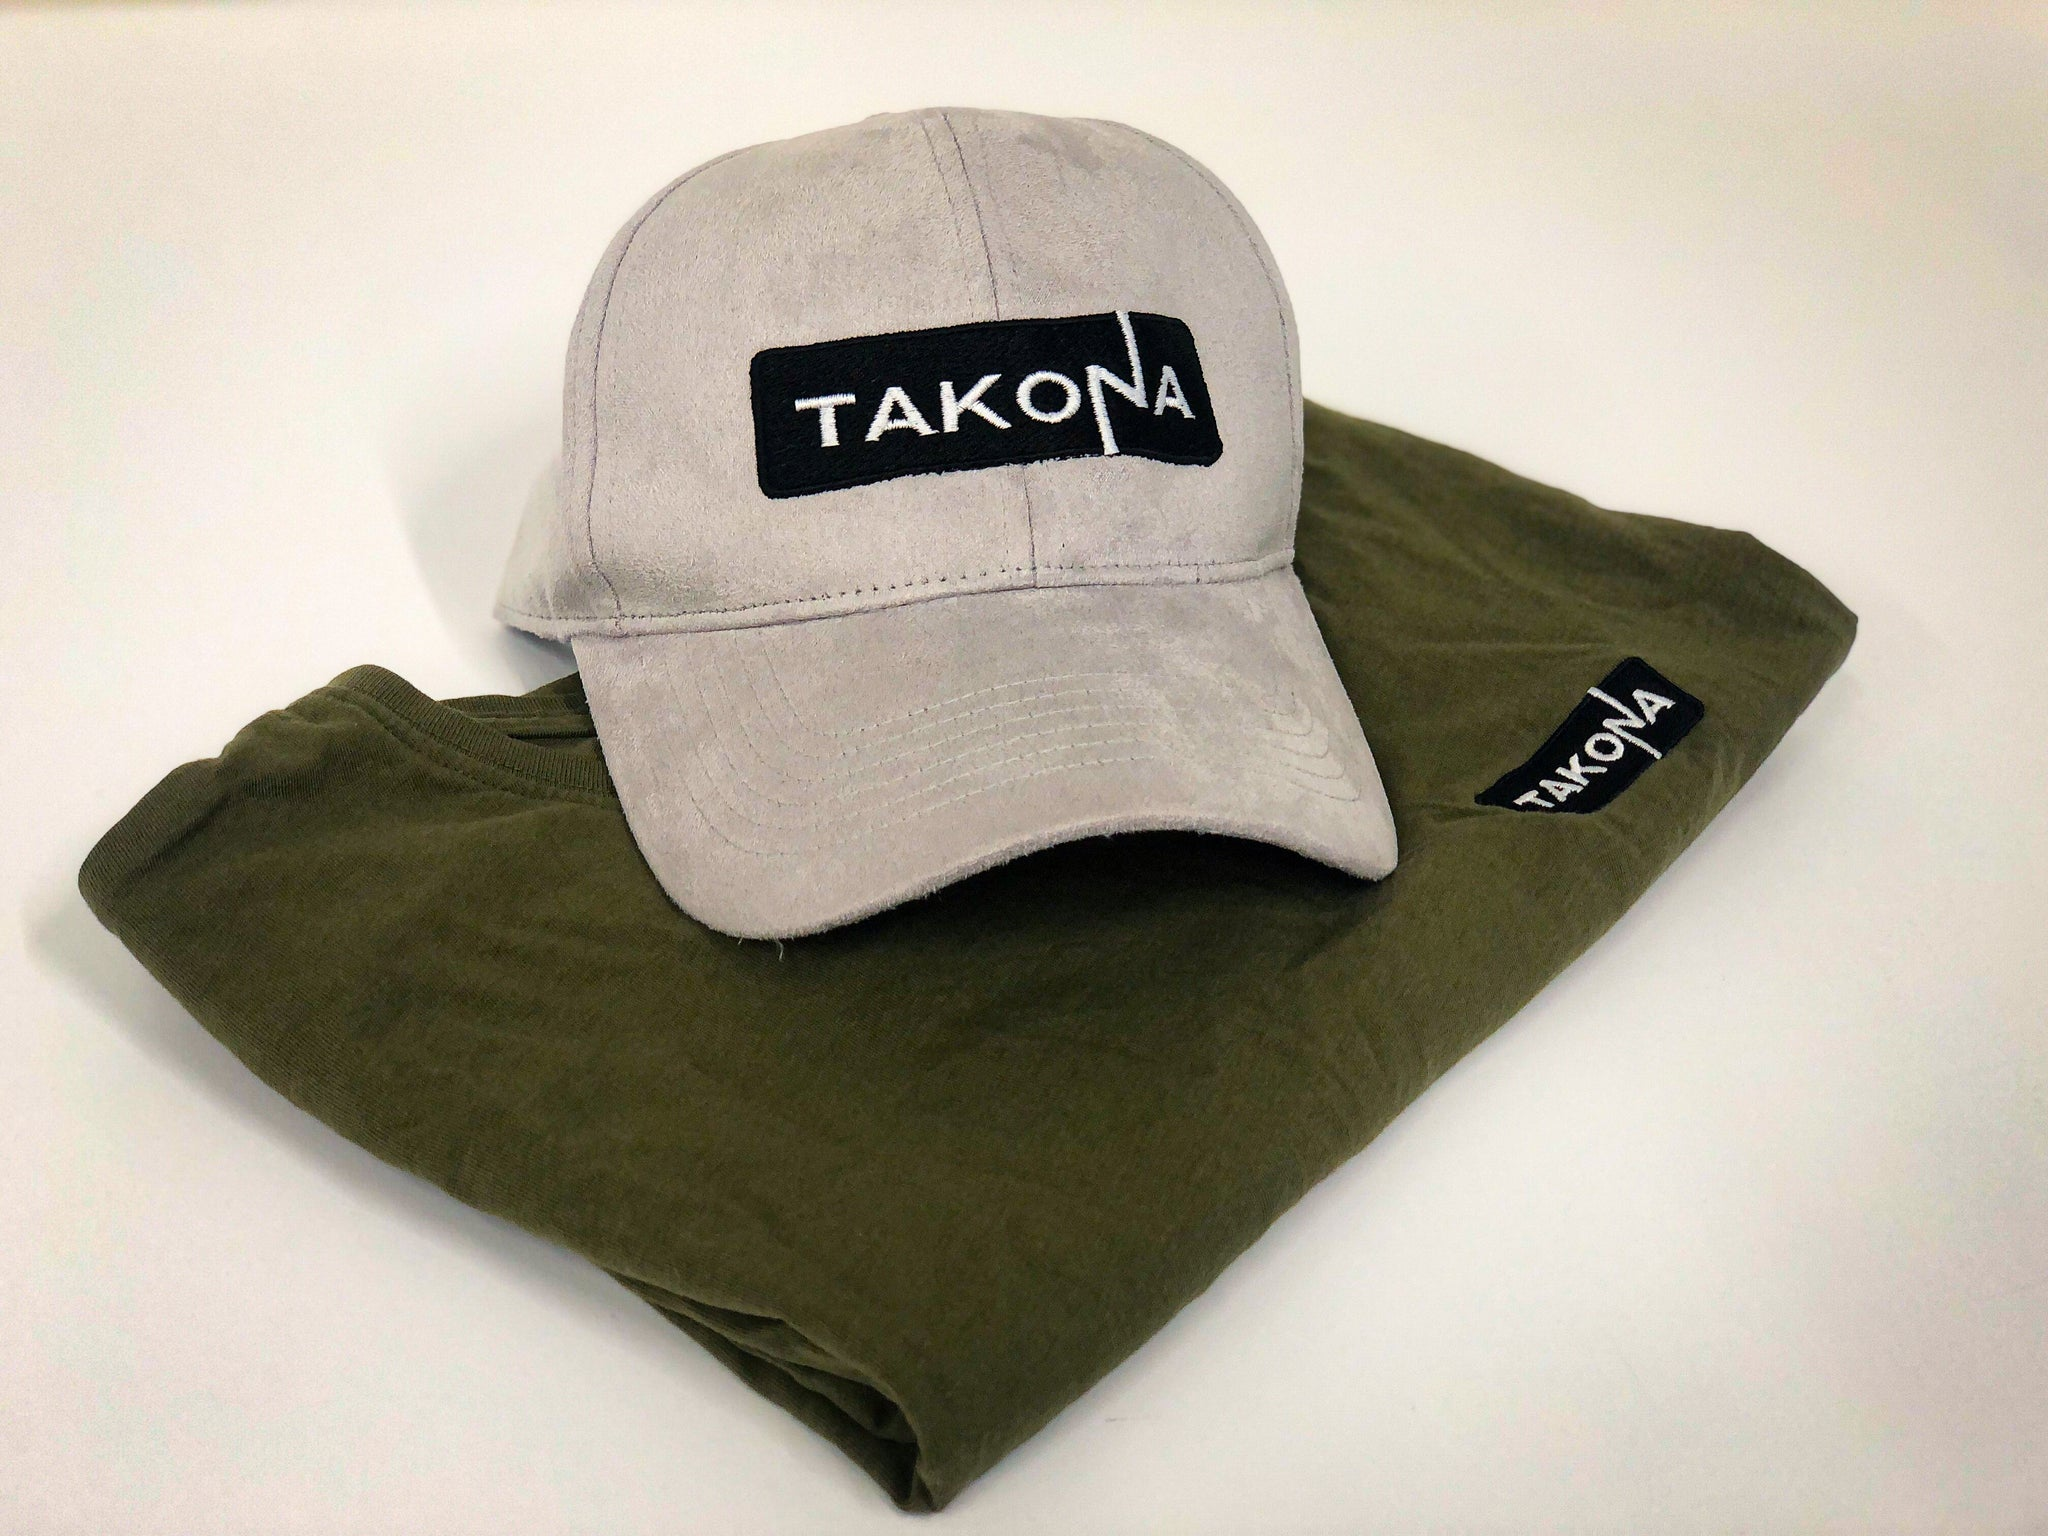 Takona Logo Embroidered Suede Baseball Cap